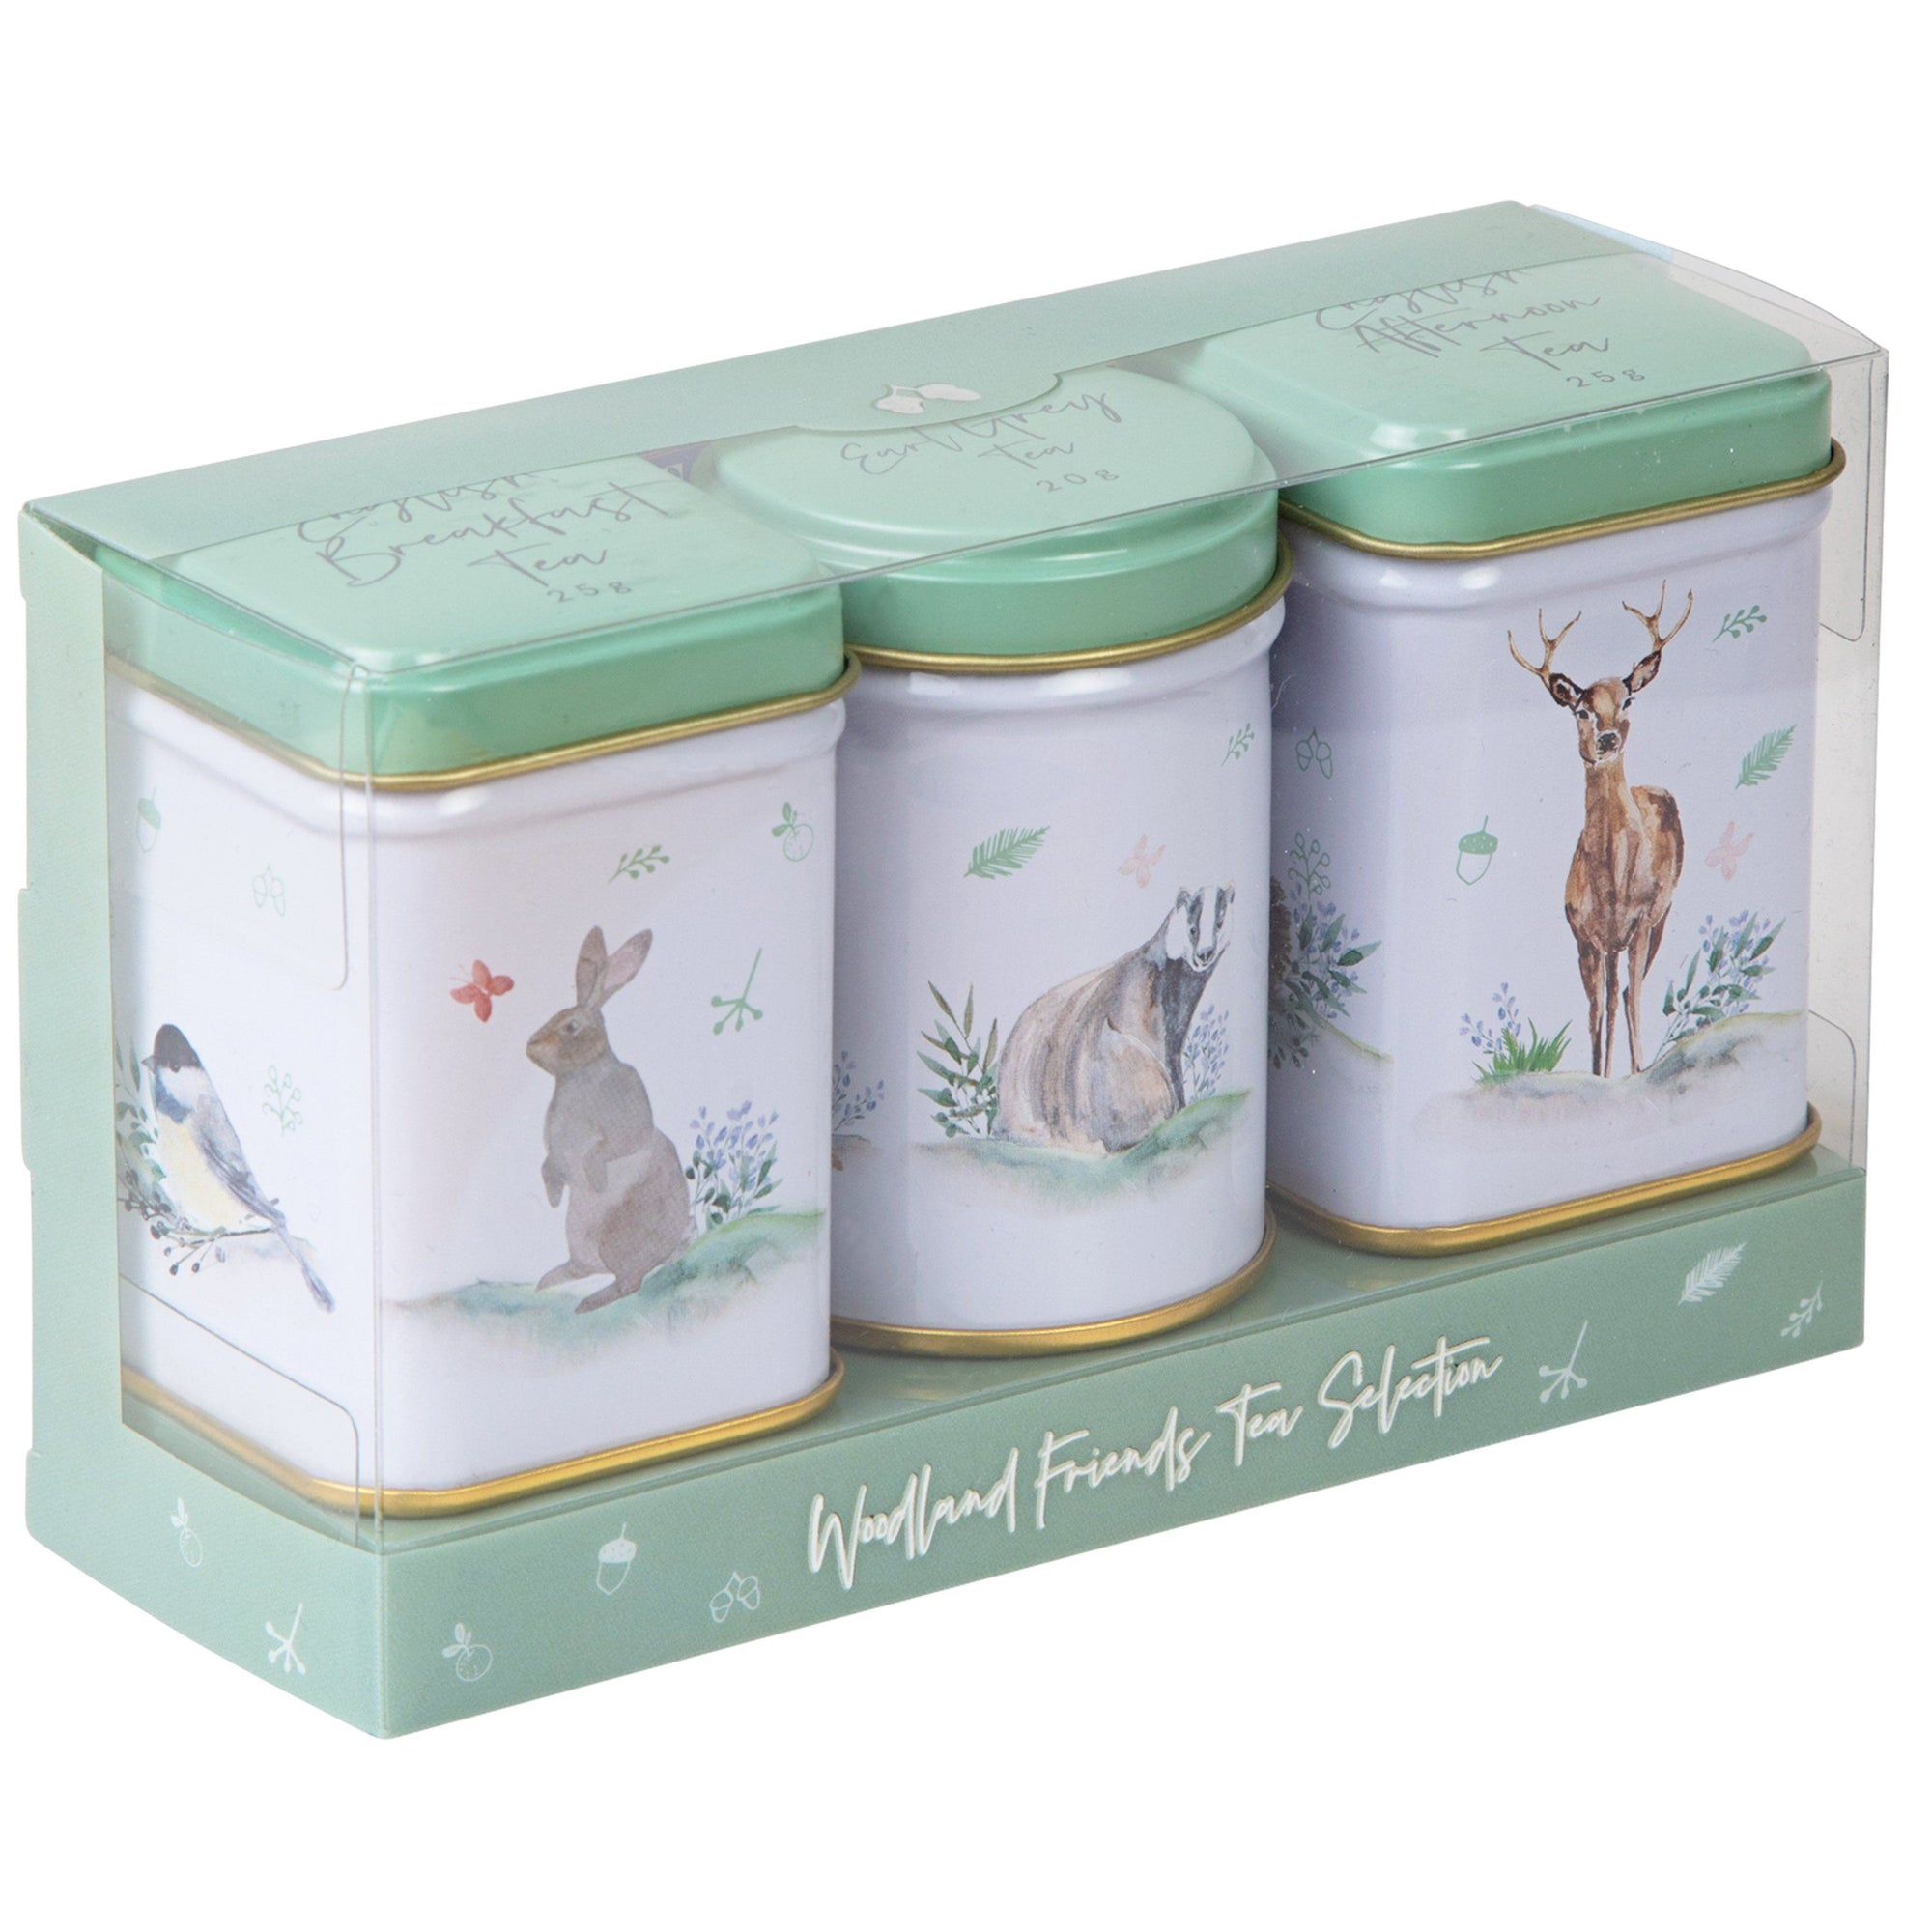 Woodland Friends Mini Tea Tin Gift Pack Black Tea New English Teas